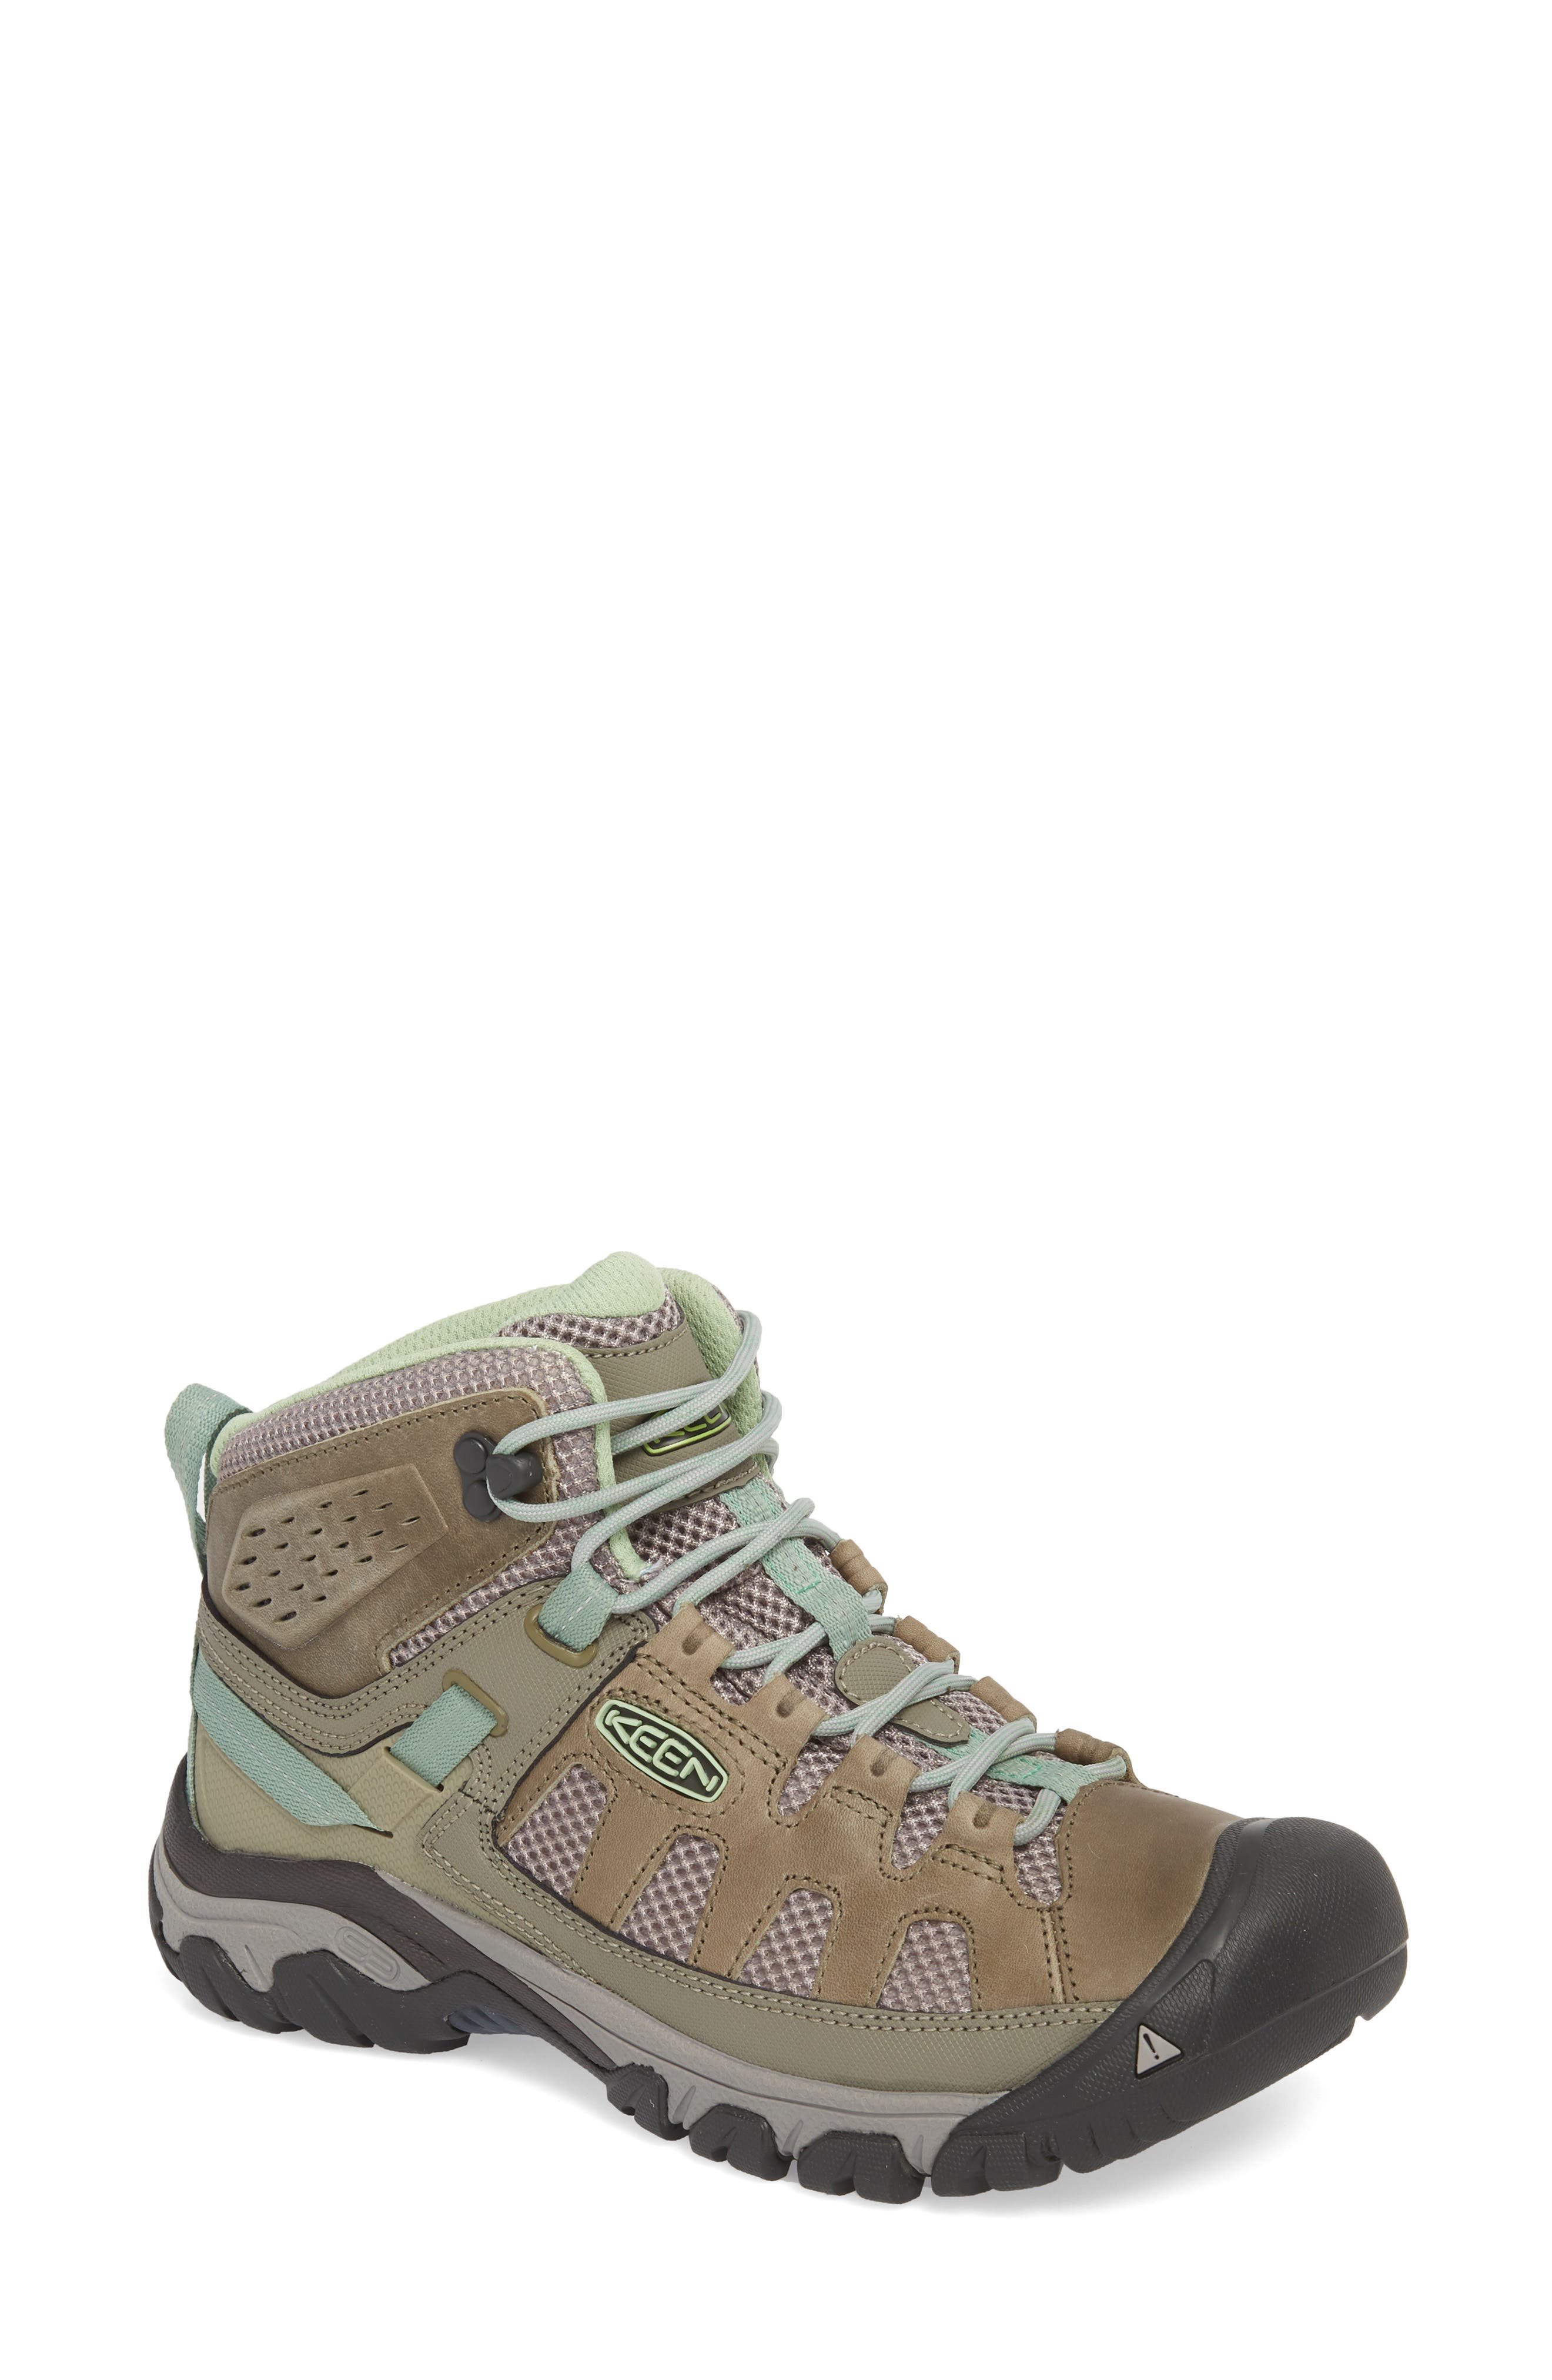 Targhee Vent Mid Hiking Shoe,                         Main,                         color, Fumo/ Quiet Green Leather